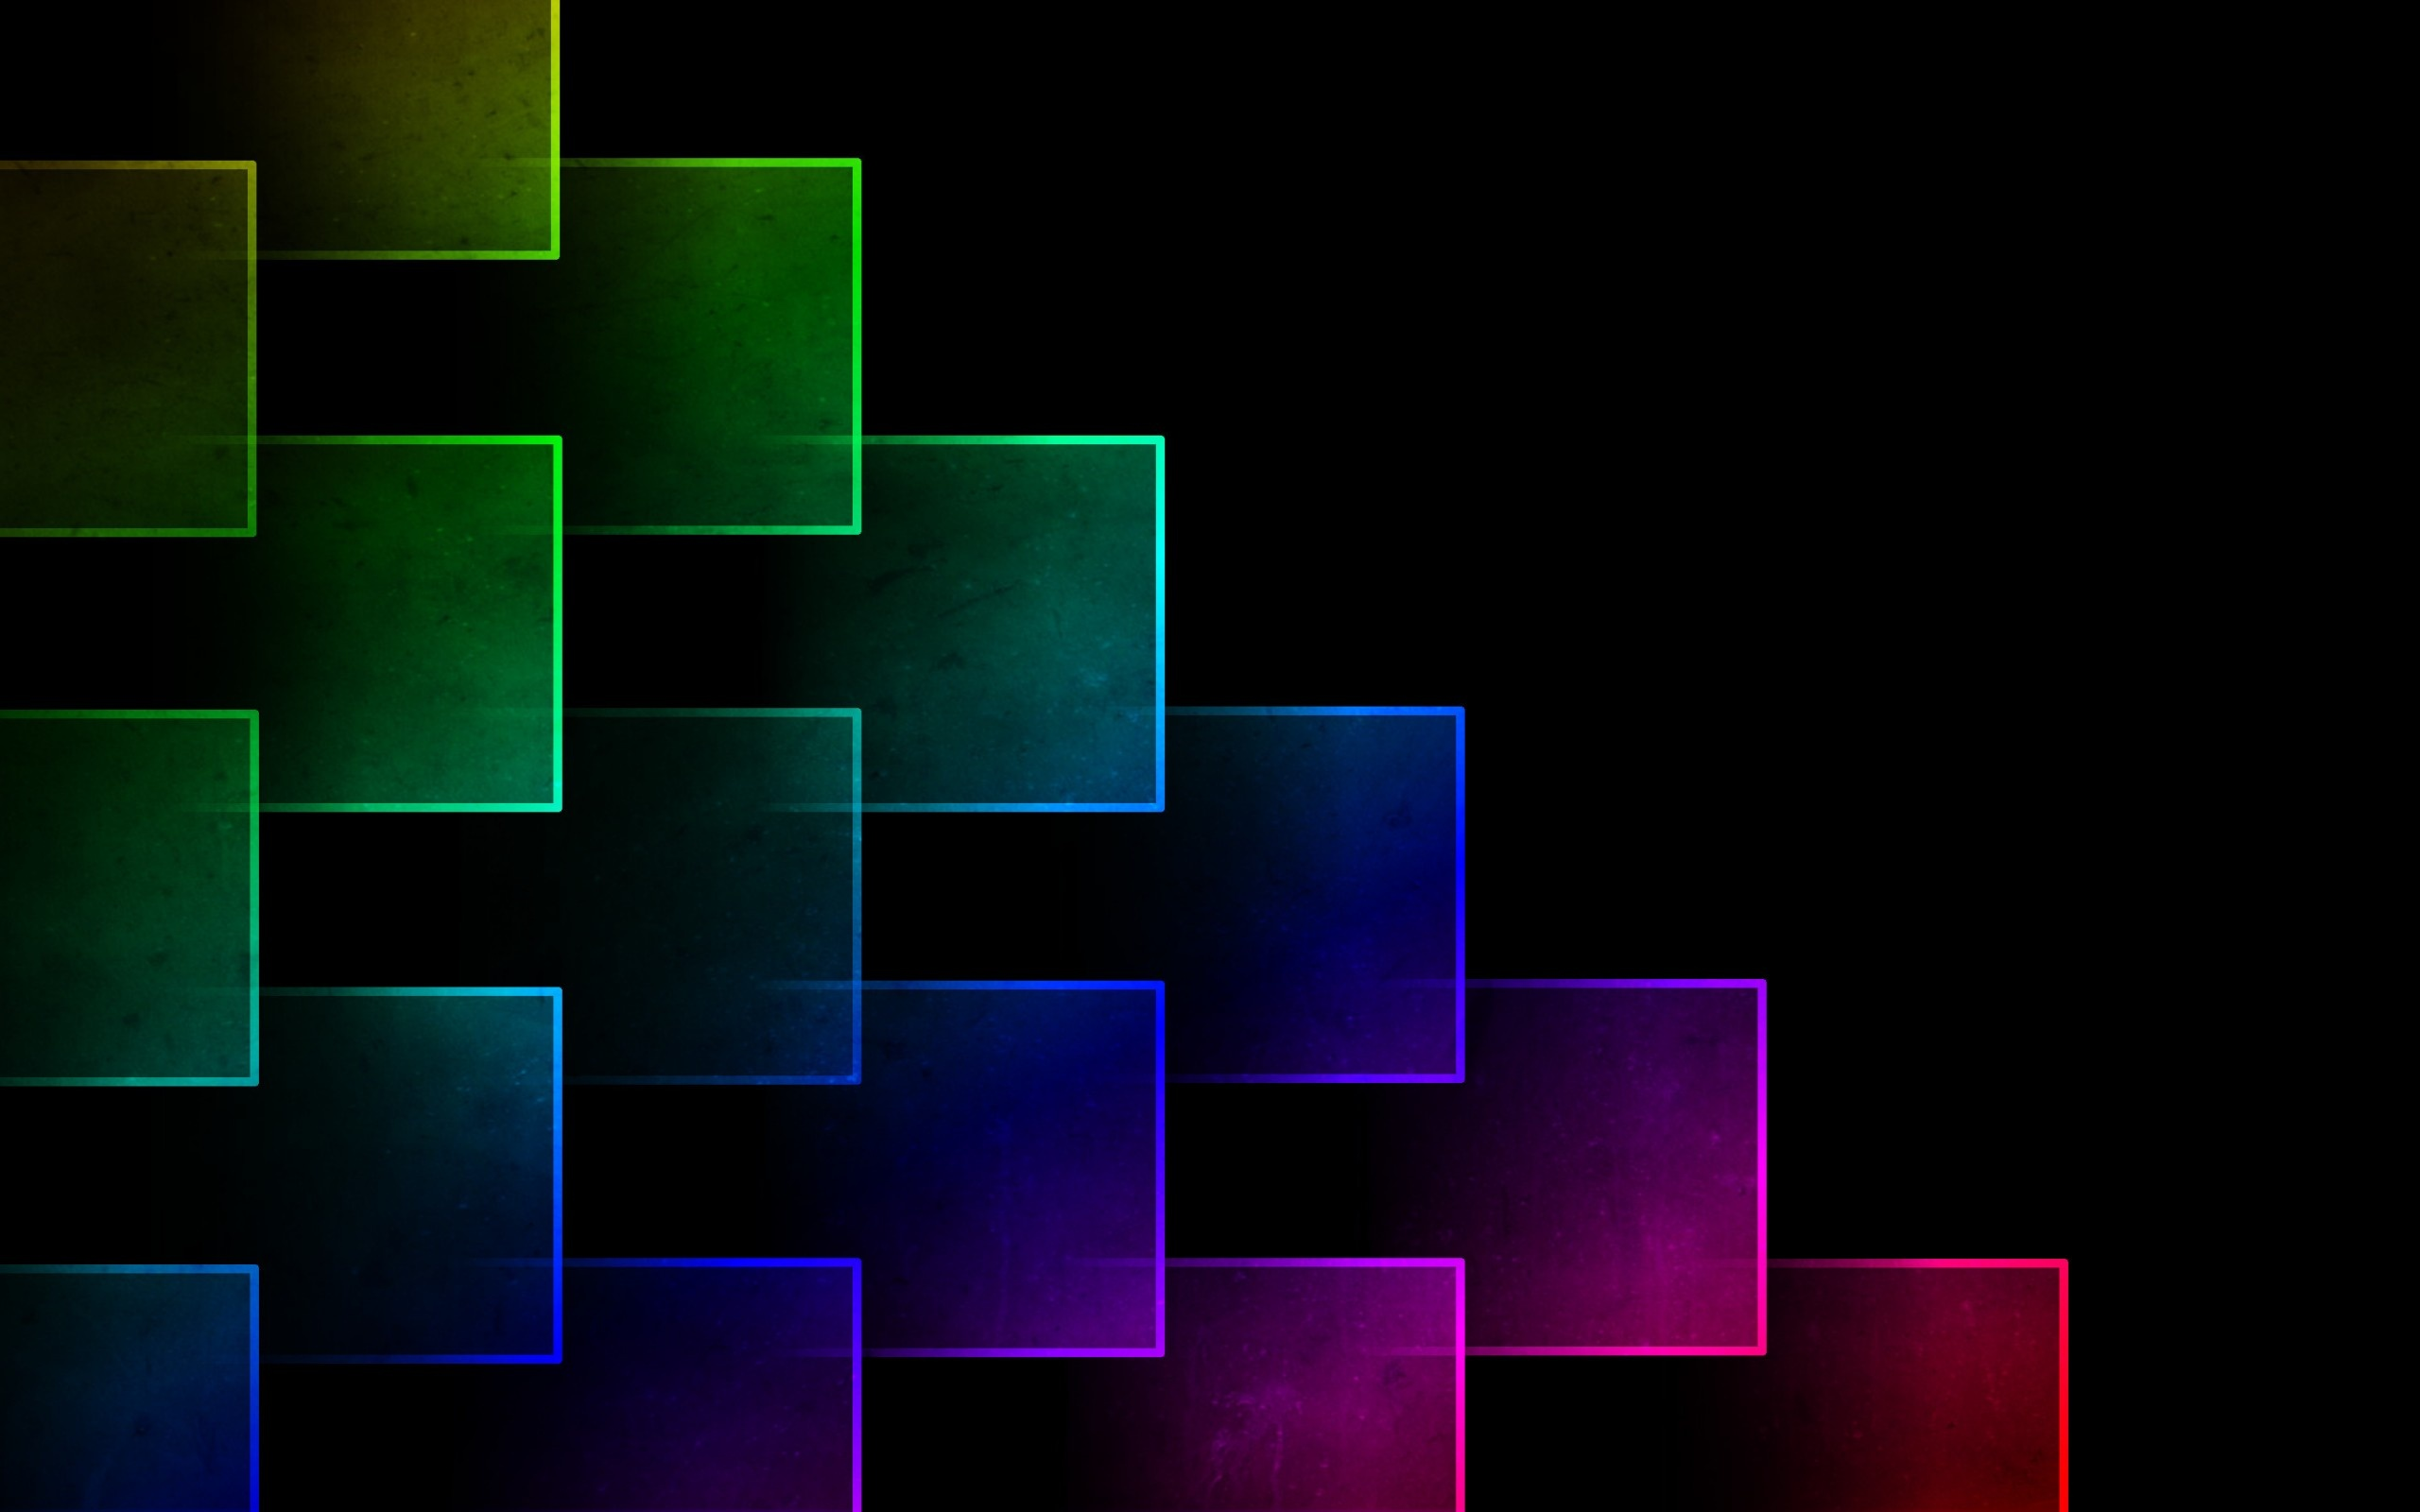 Color Cubes Background | 2560 x 1600 | Download | Close: https://www.bhmpics.com/view-color_cubes_background-2560x1600.html